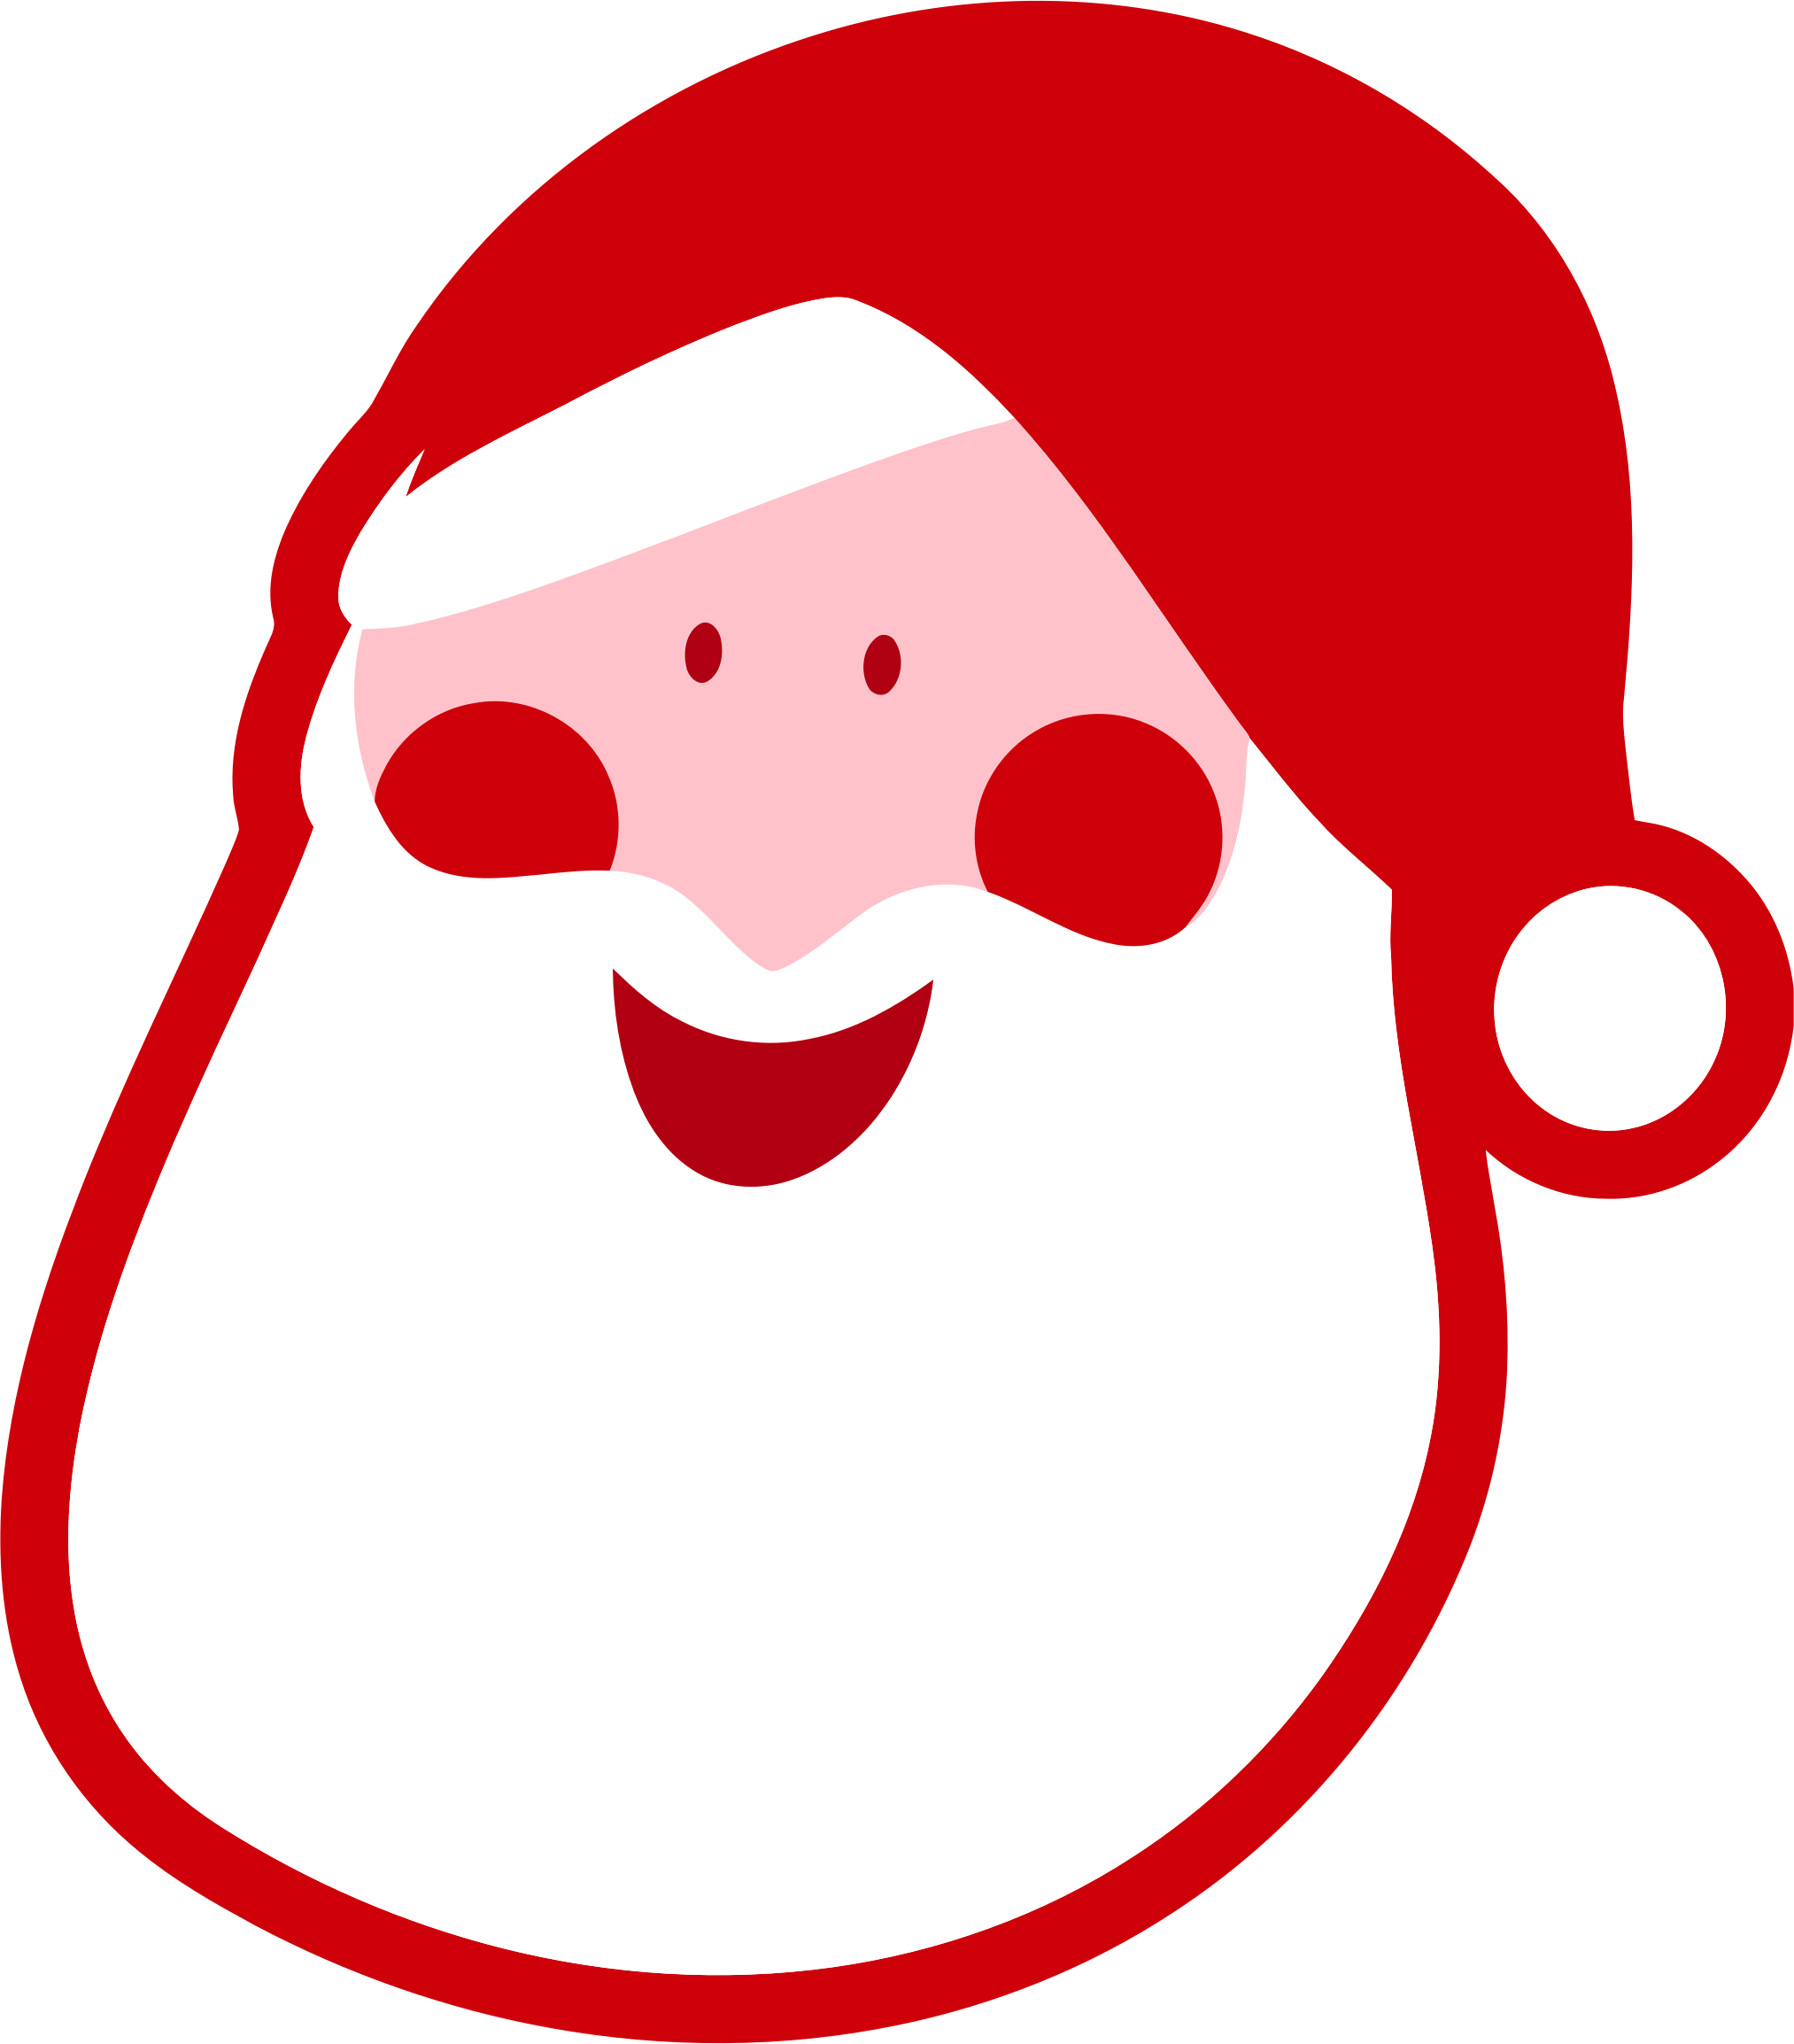 Santa Claus Head by GDJ